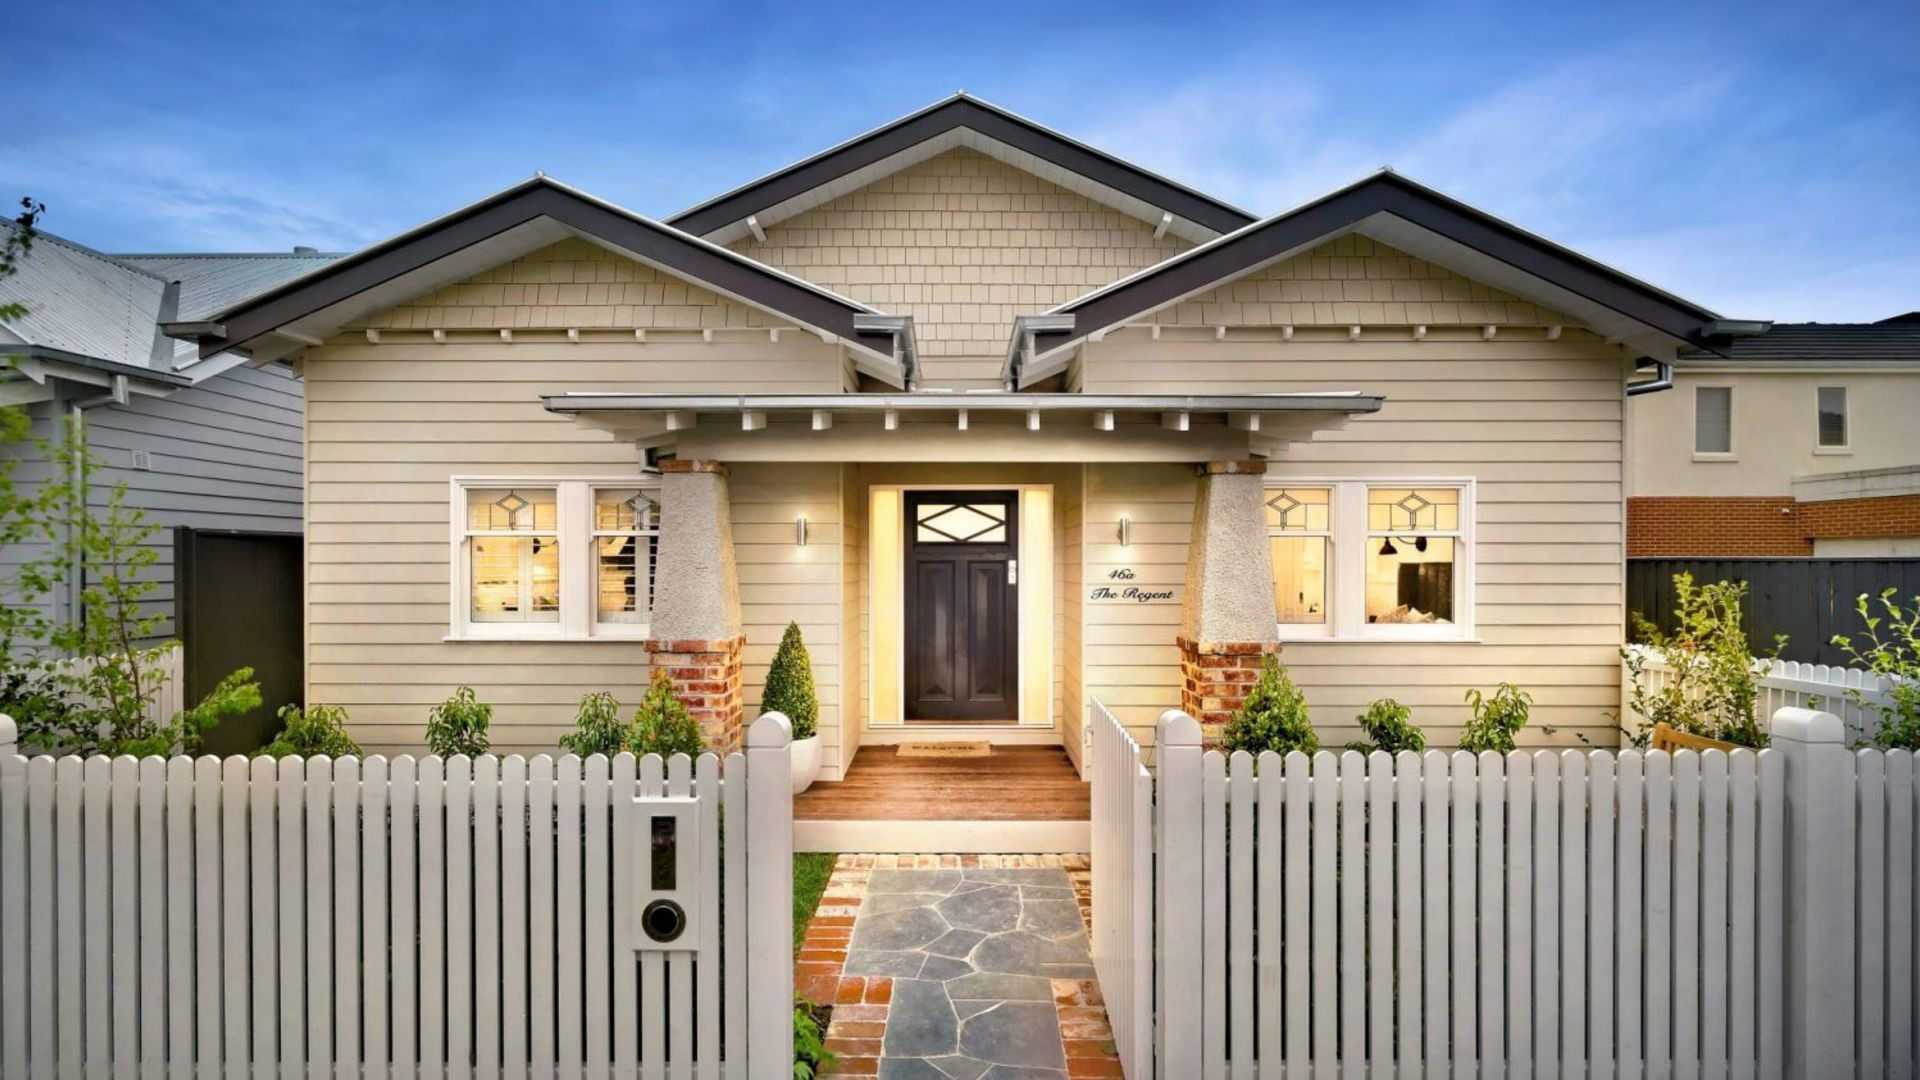 Worried About Overpaying on Your Next Home?